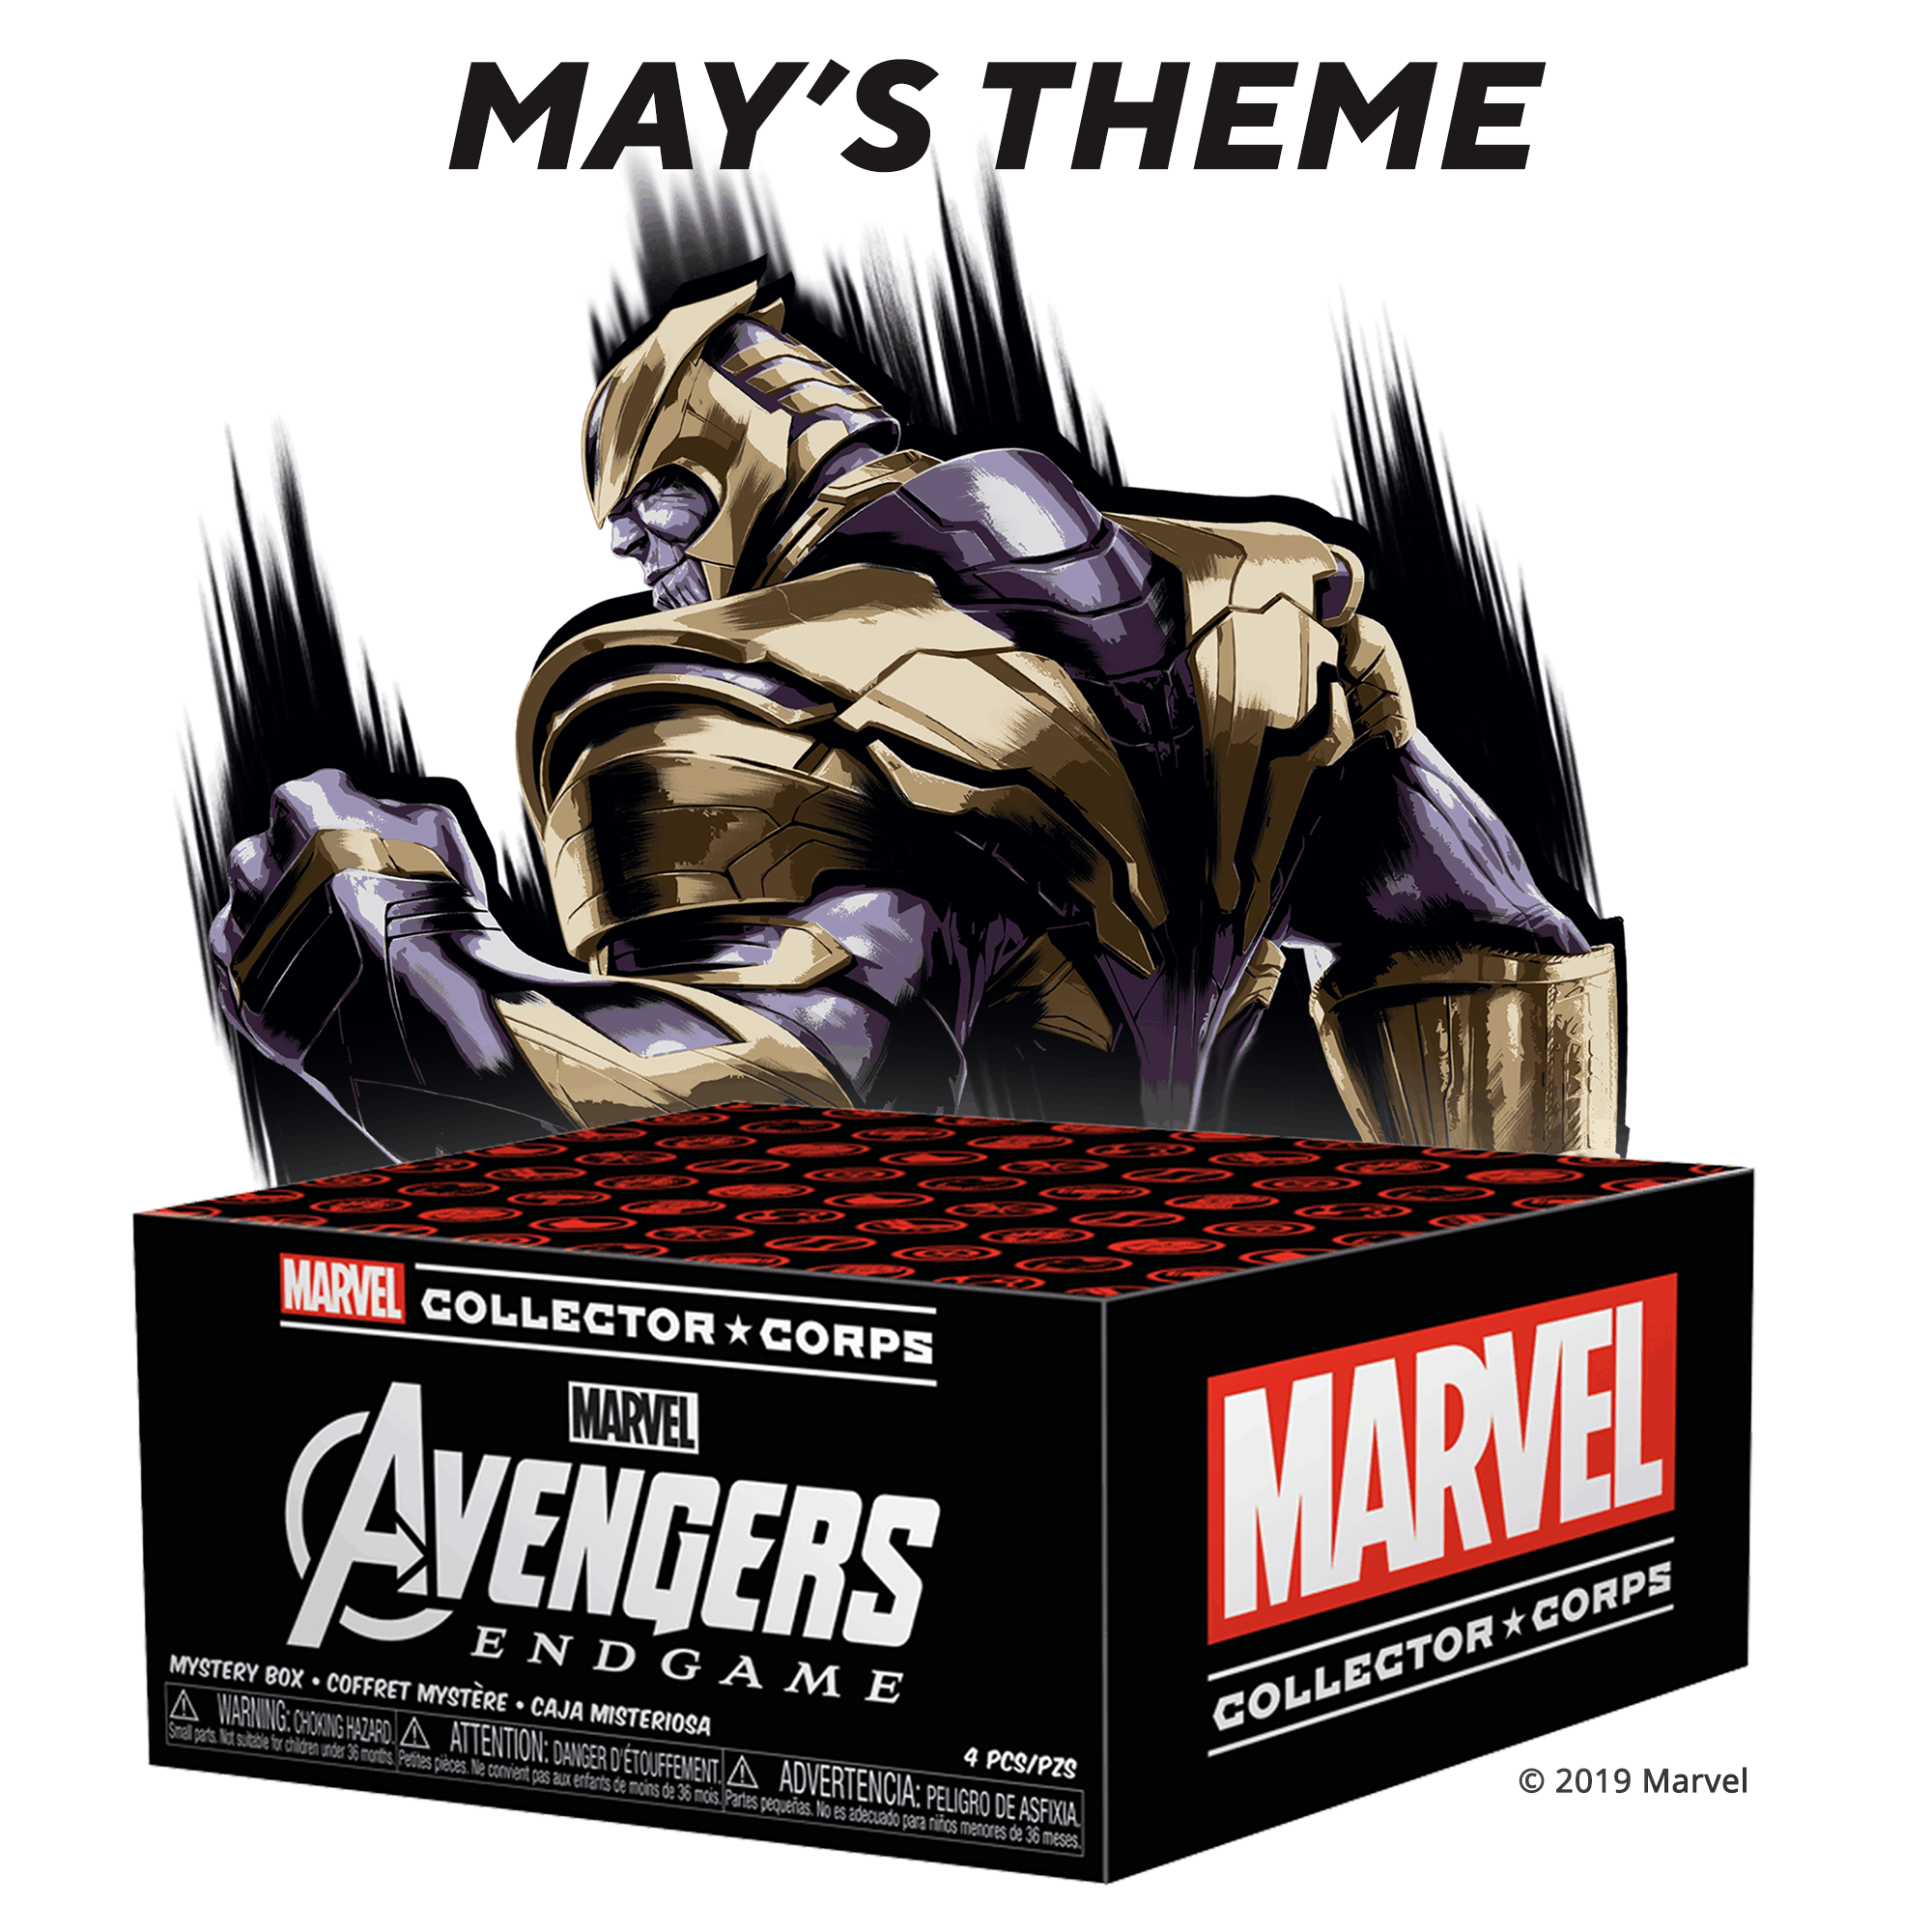 Marvel Collector Corps May 2019 Theme Spoilers!